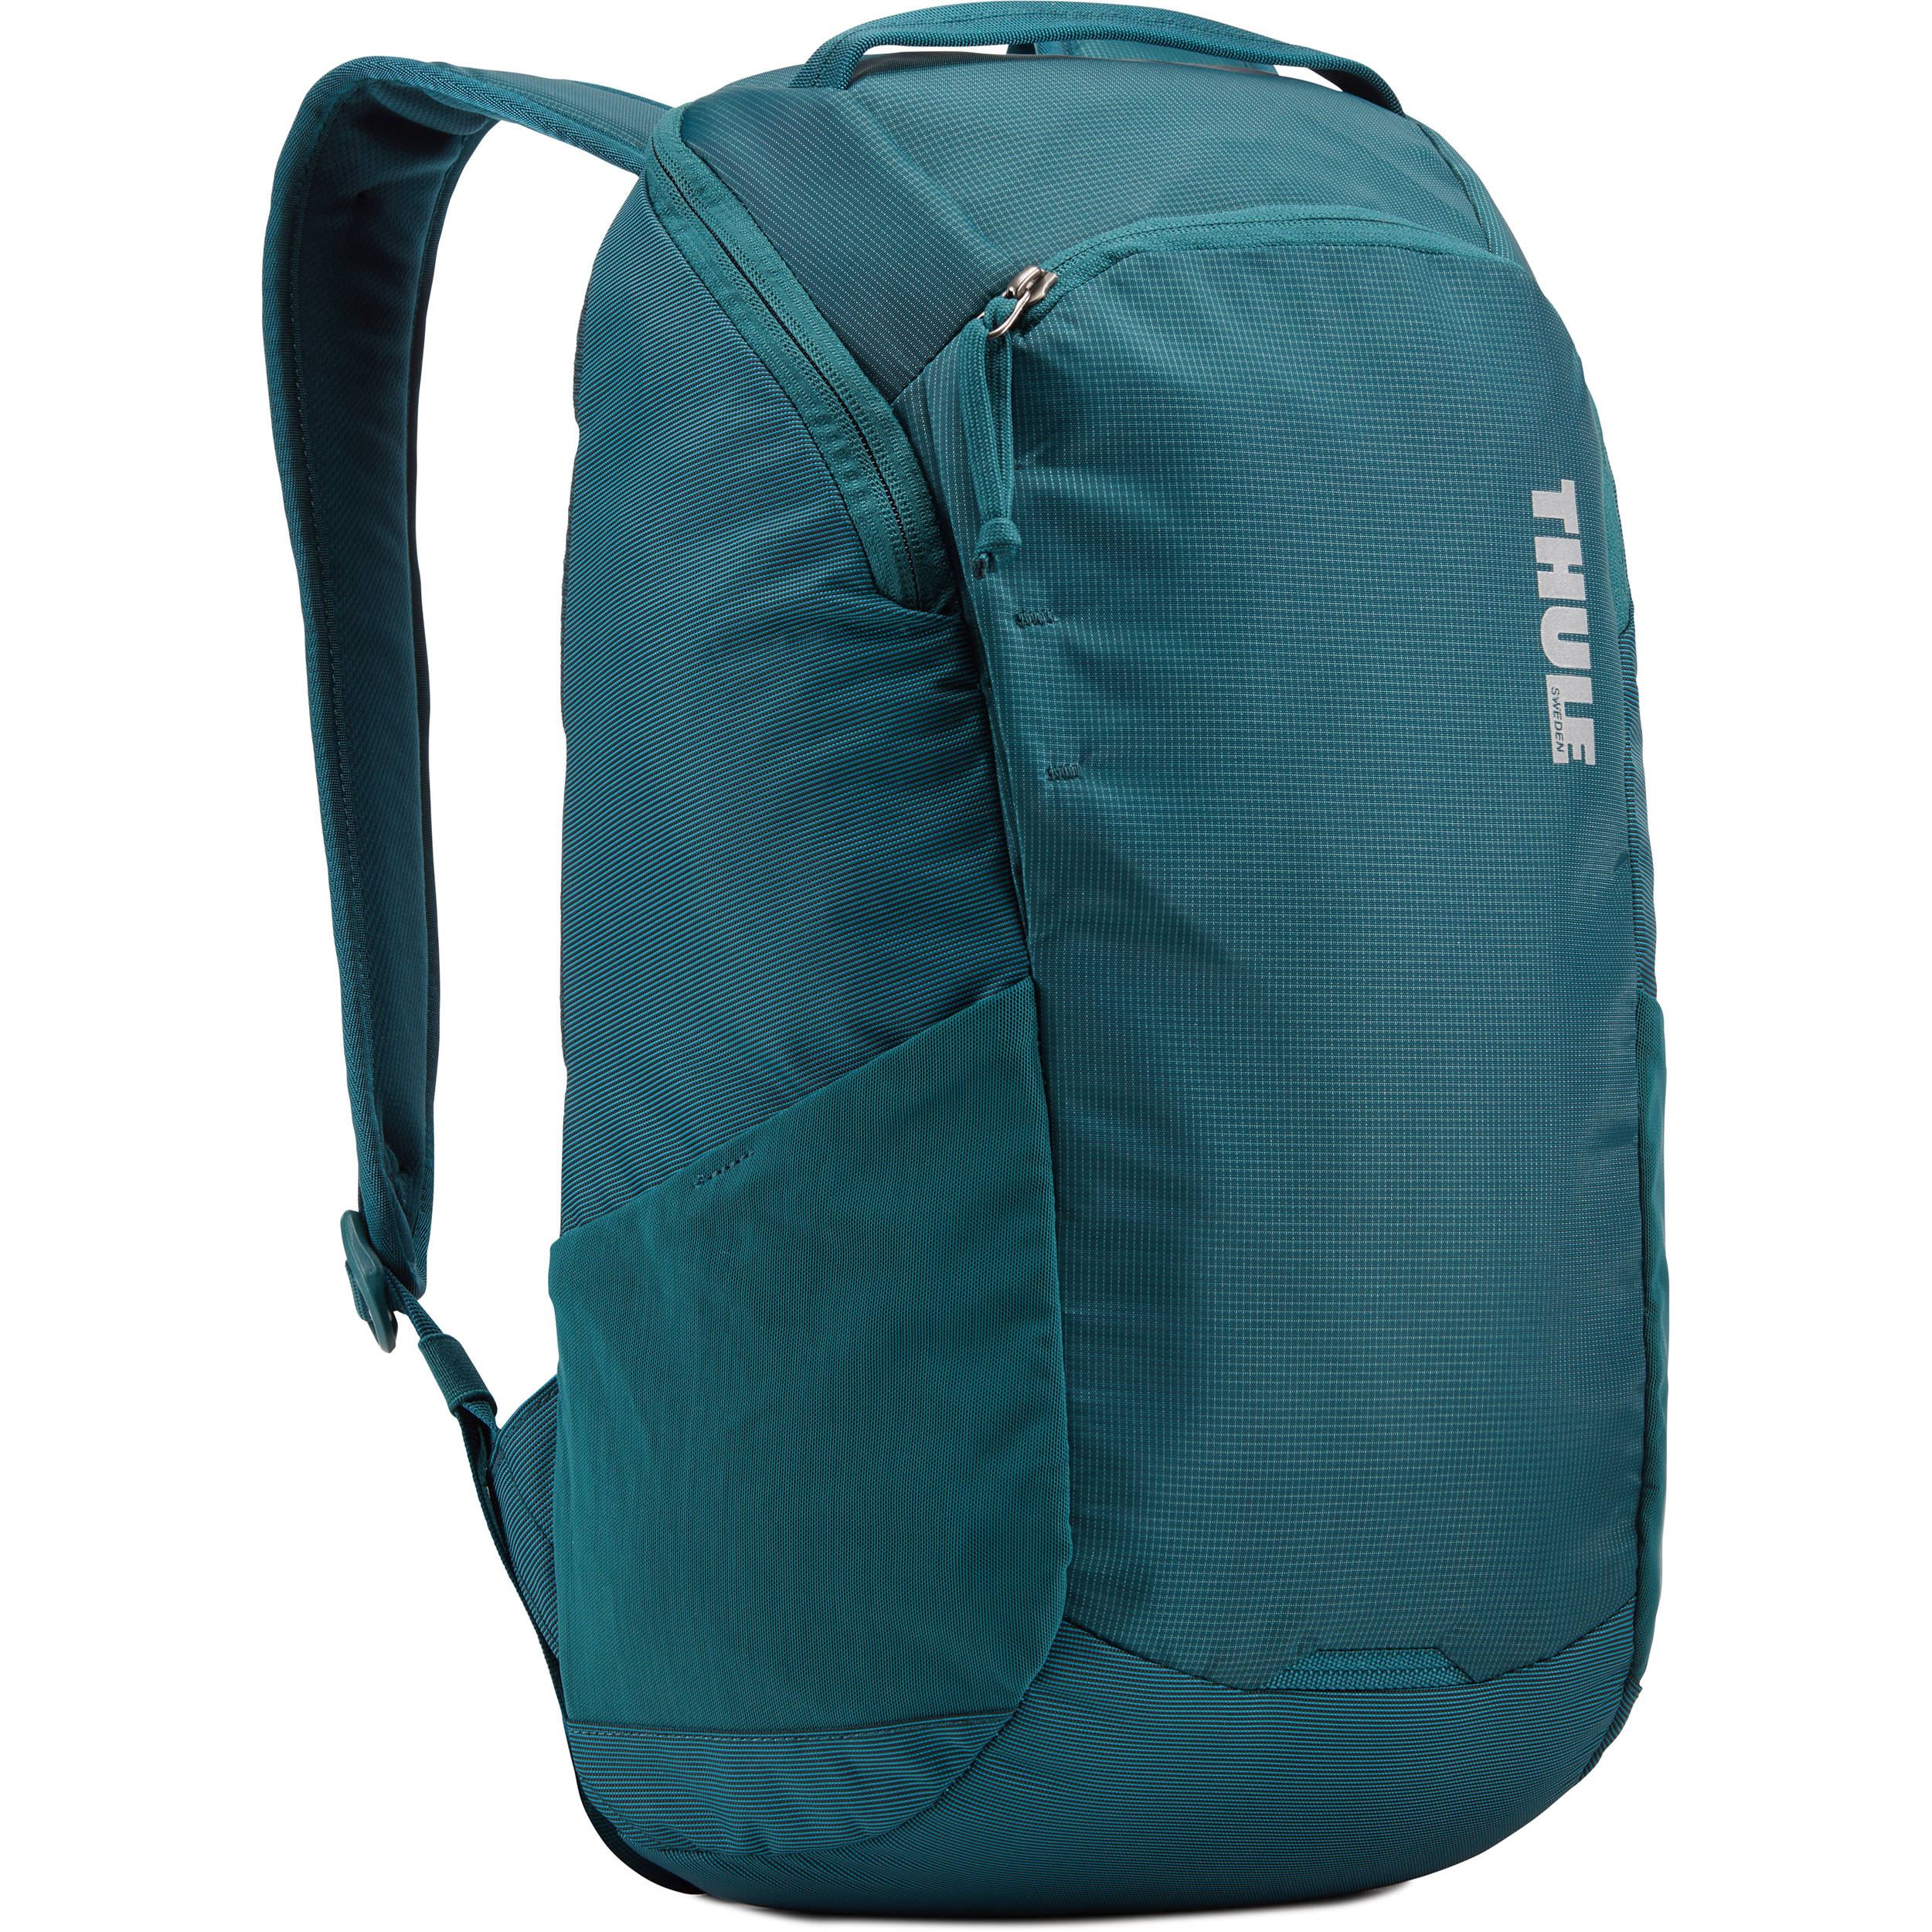 Thule EnRoute 14L Backpack (Teal) 3203589 B&H Photo Video